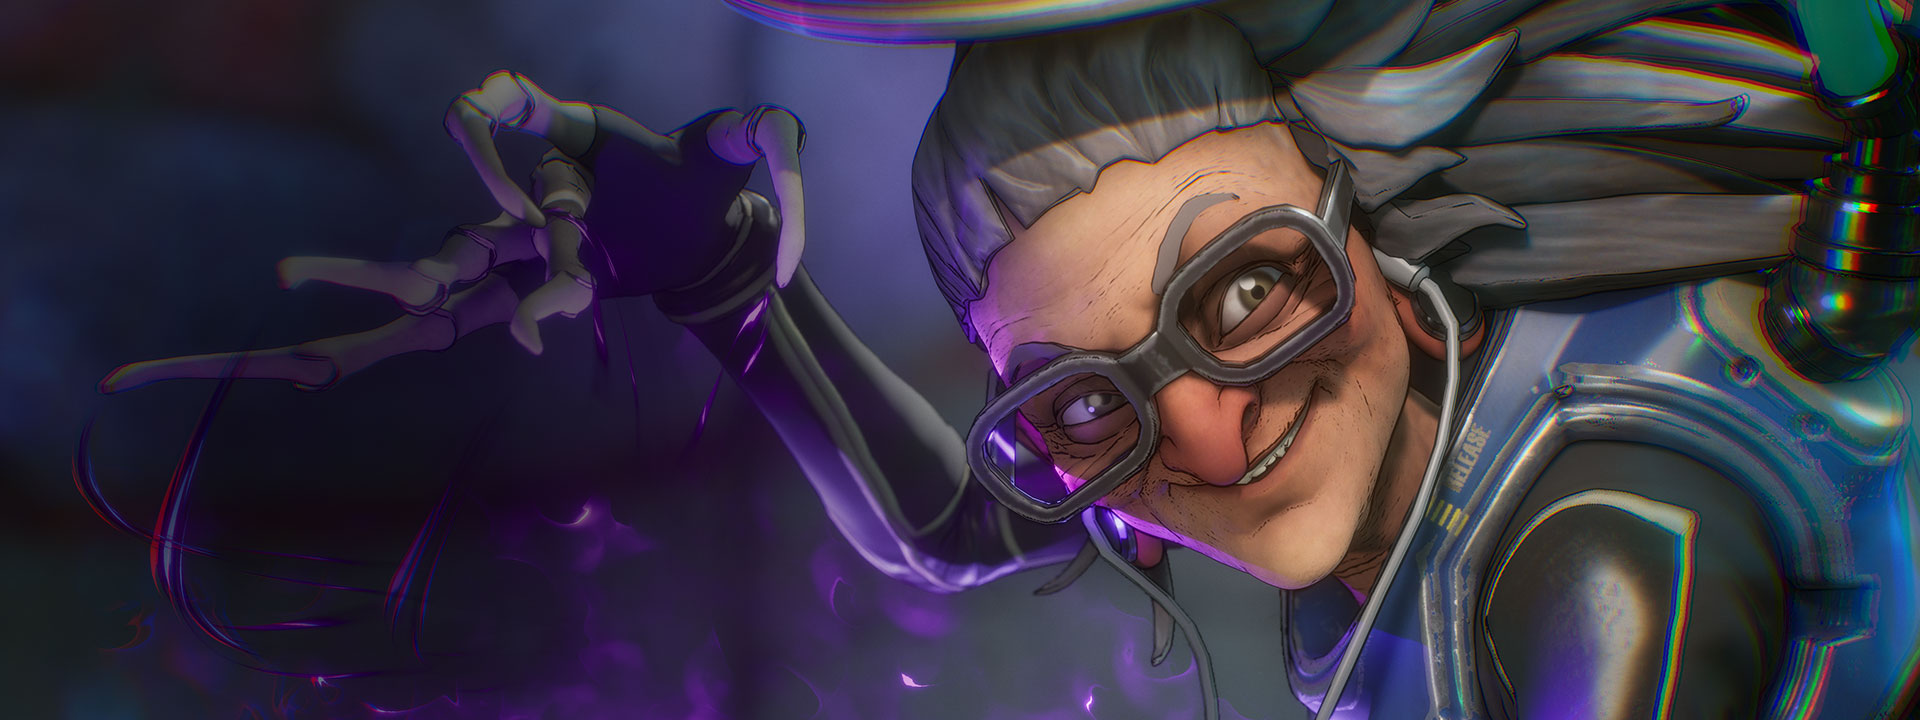 Character Maeve with gray hair, glasses, and earphone with purple sparks coming out of her hand